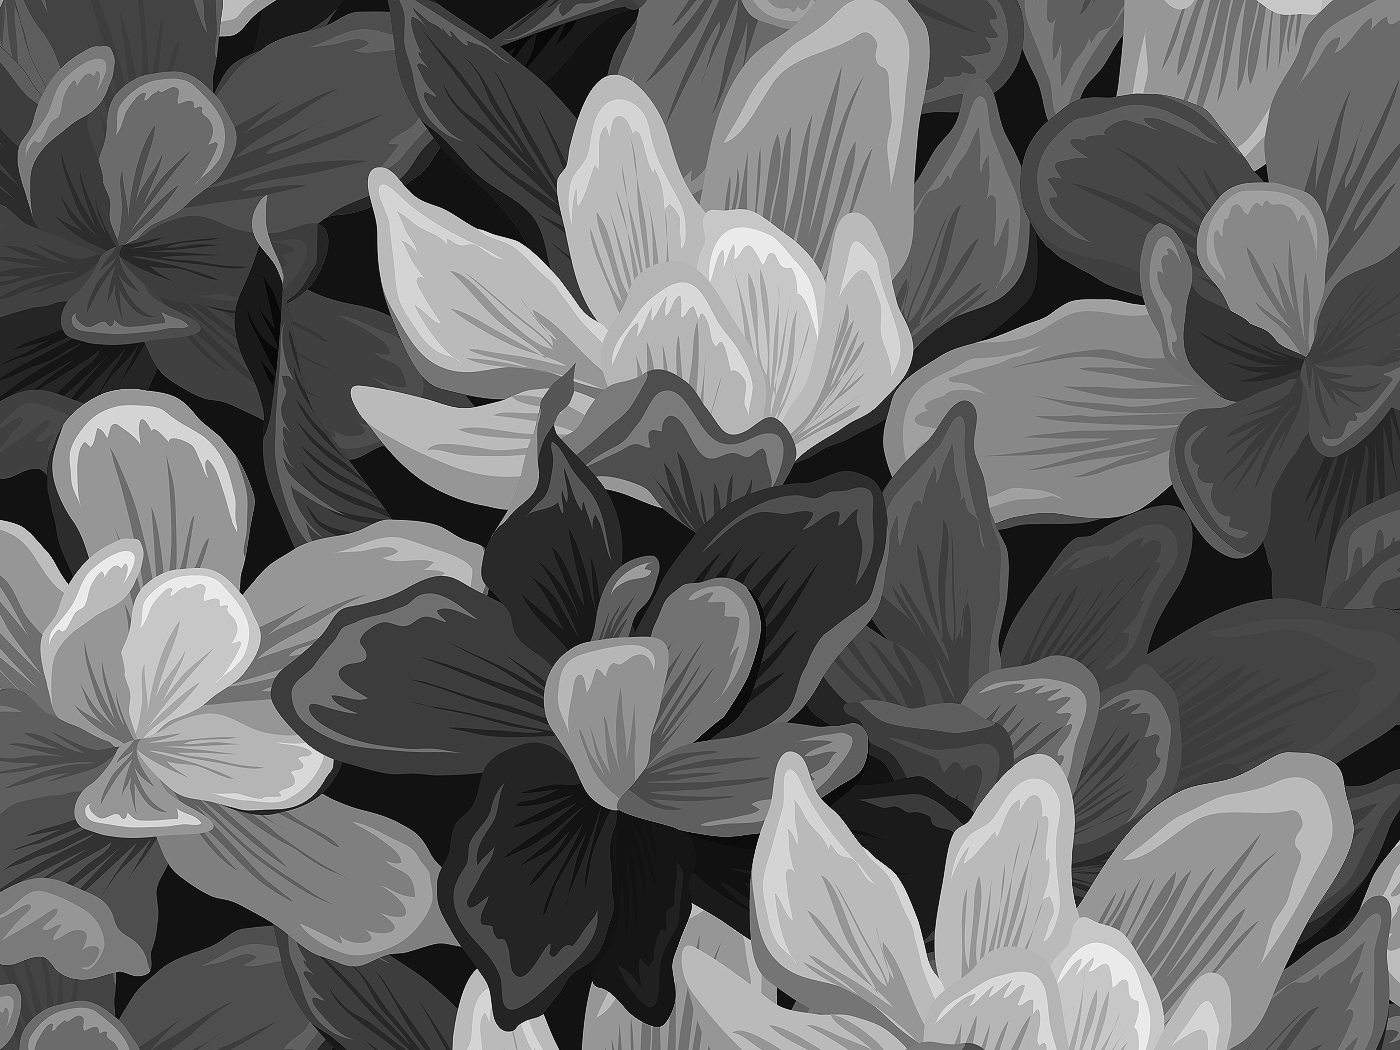 Hd 1080p Flower Png Nature Background Www Galleryneed Com